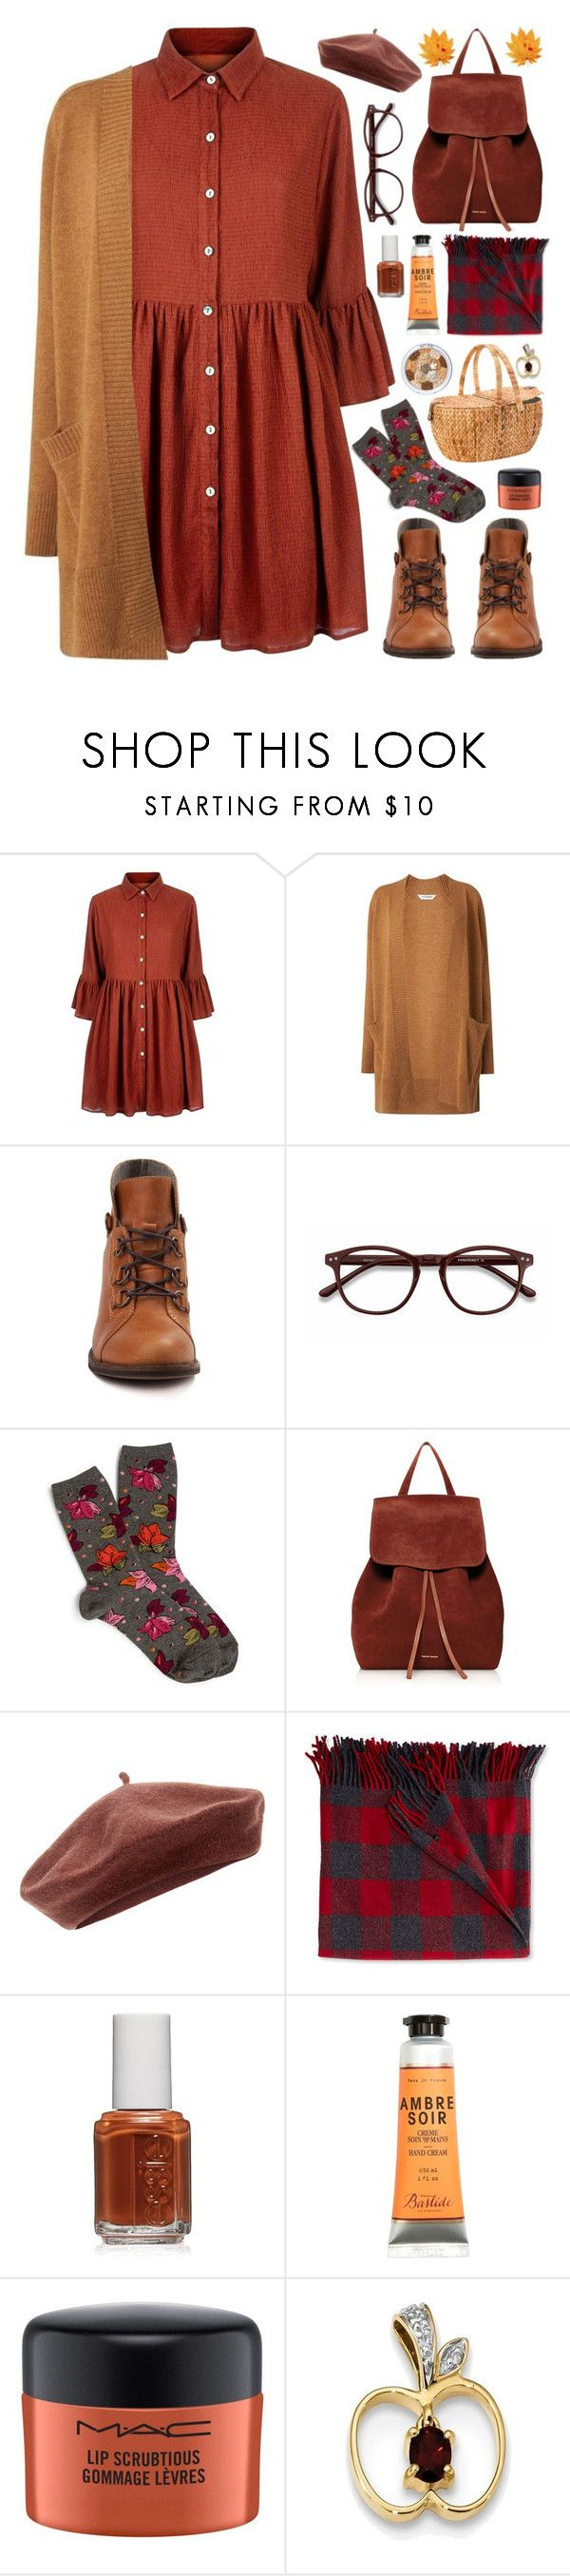 """Harvest Time"" by stavrolga on Polyvore featuring John Lewis, Mela Loves London, L.K.Bennett, EyeBuyDirect.com, Vera Bradley, Mansur Gavriel, Accessorize, L.L.Bean, Essie and MAC Cosmetics"